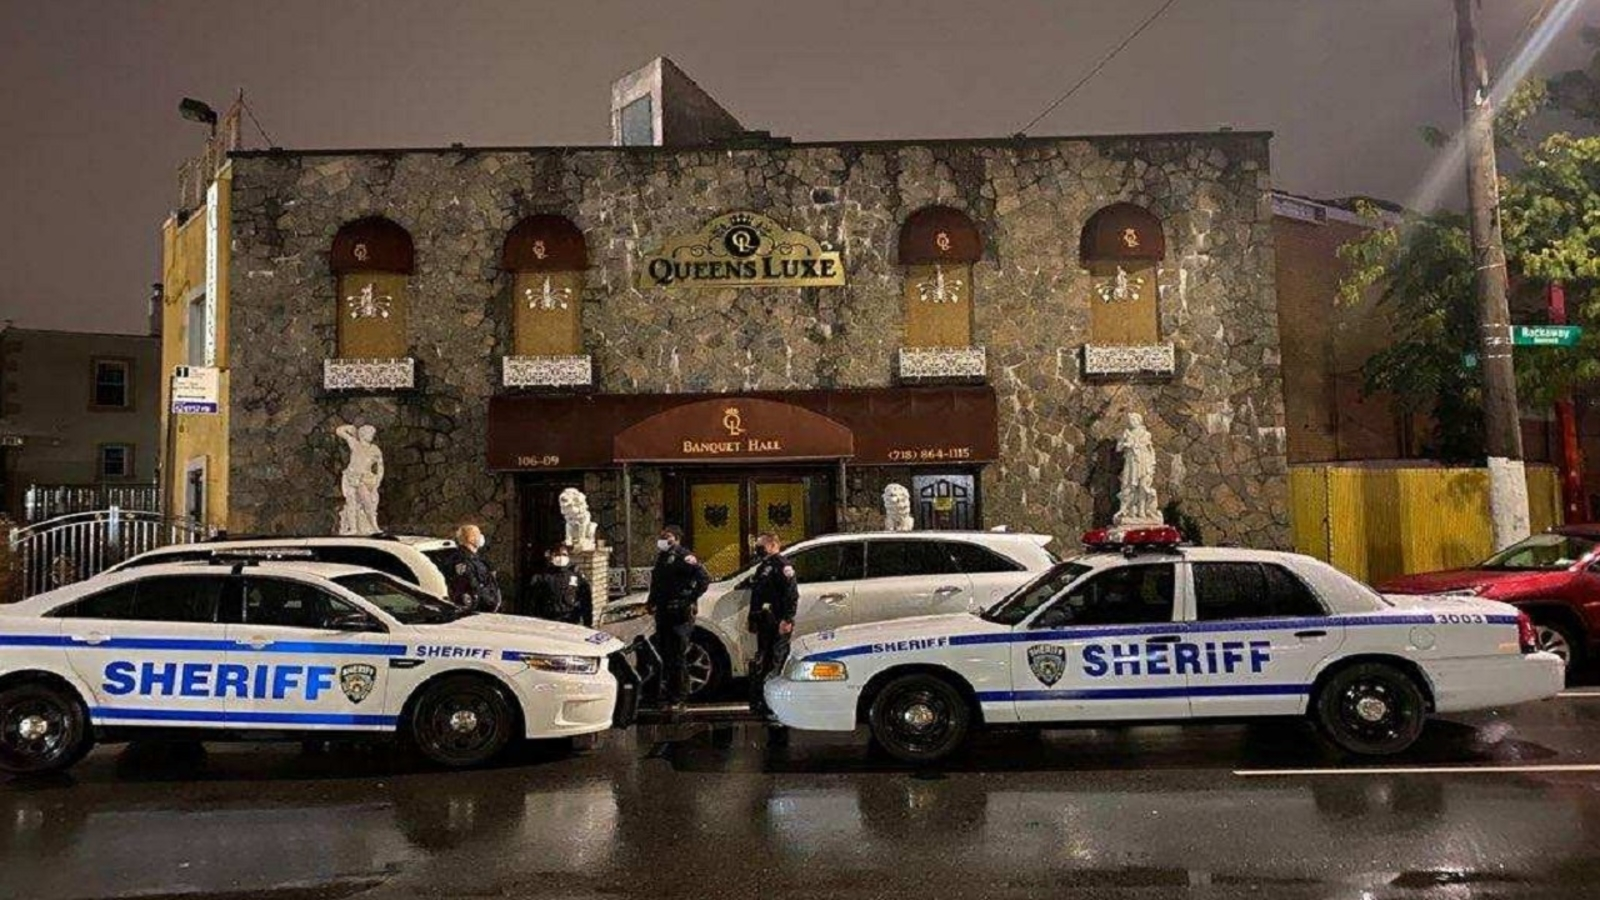 The New York City Sherriff's Department tweeted that it shut down an illegal gathering at the Queens Luxe Banquet Hall on Rockaway Boulevard in Ozone Park.